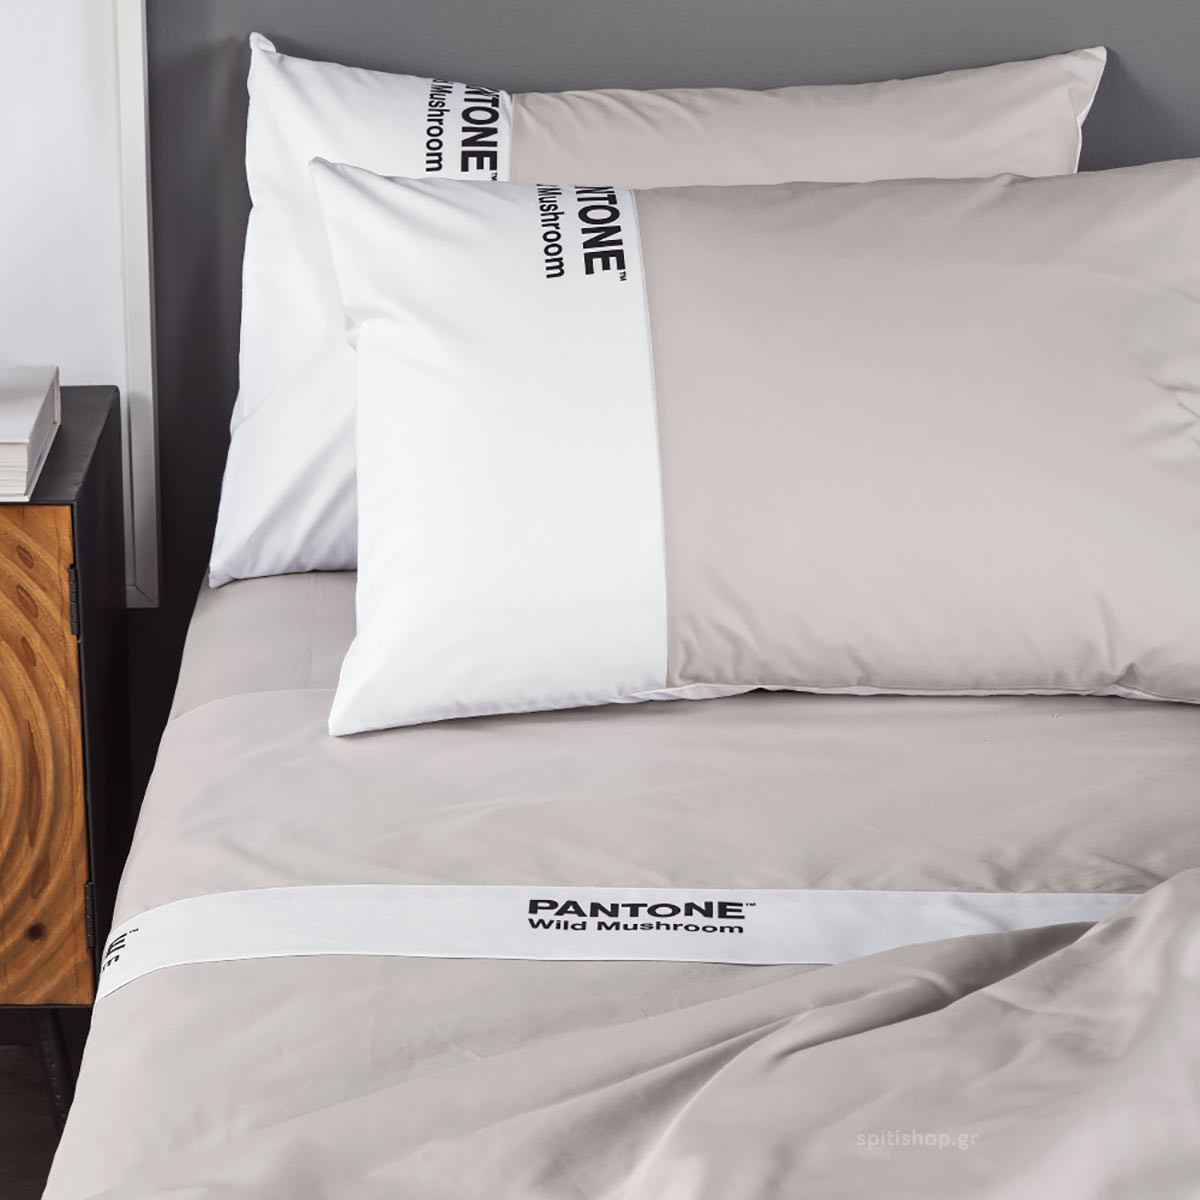 Σεντόνια King Size (Σετ) Kentia Stylish Pantone 4203